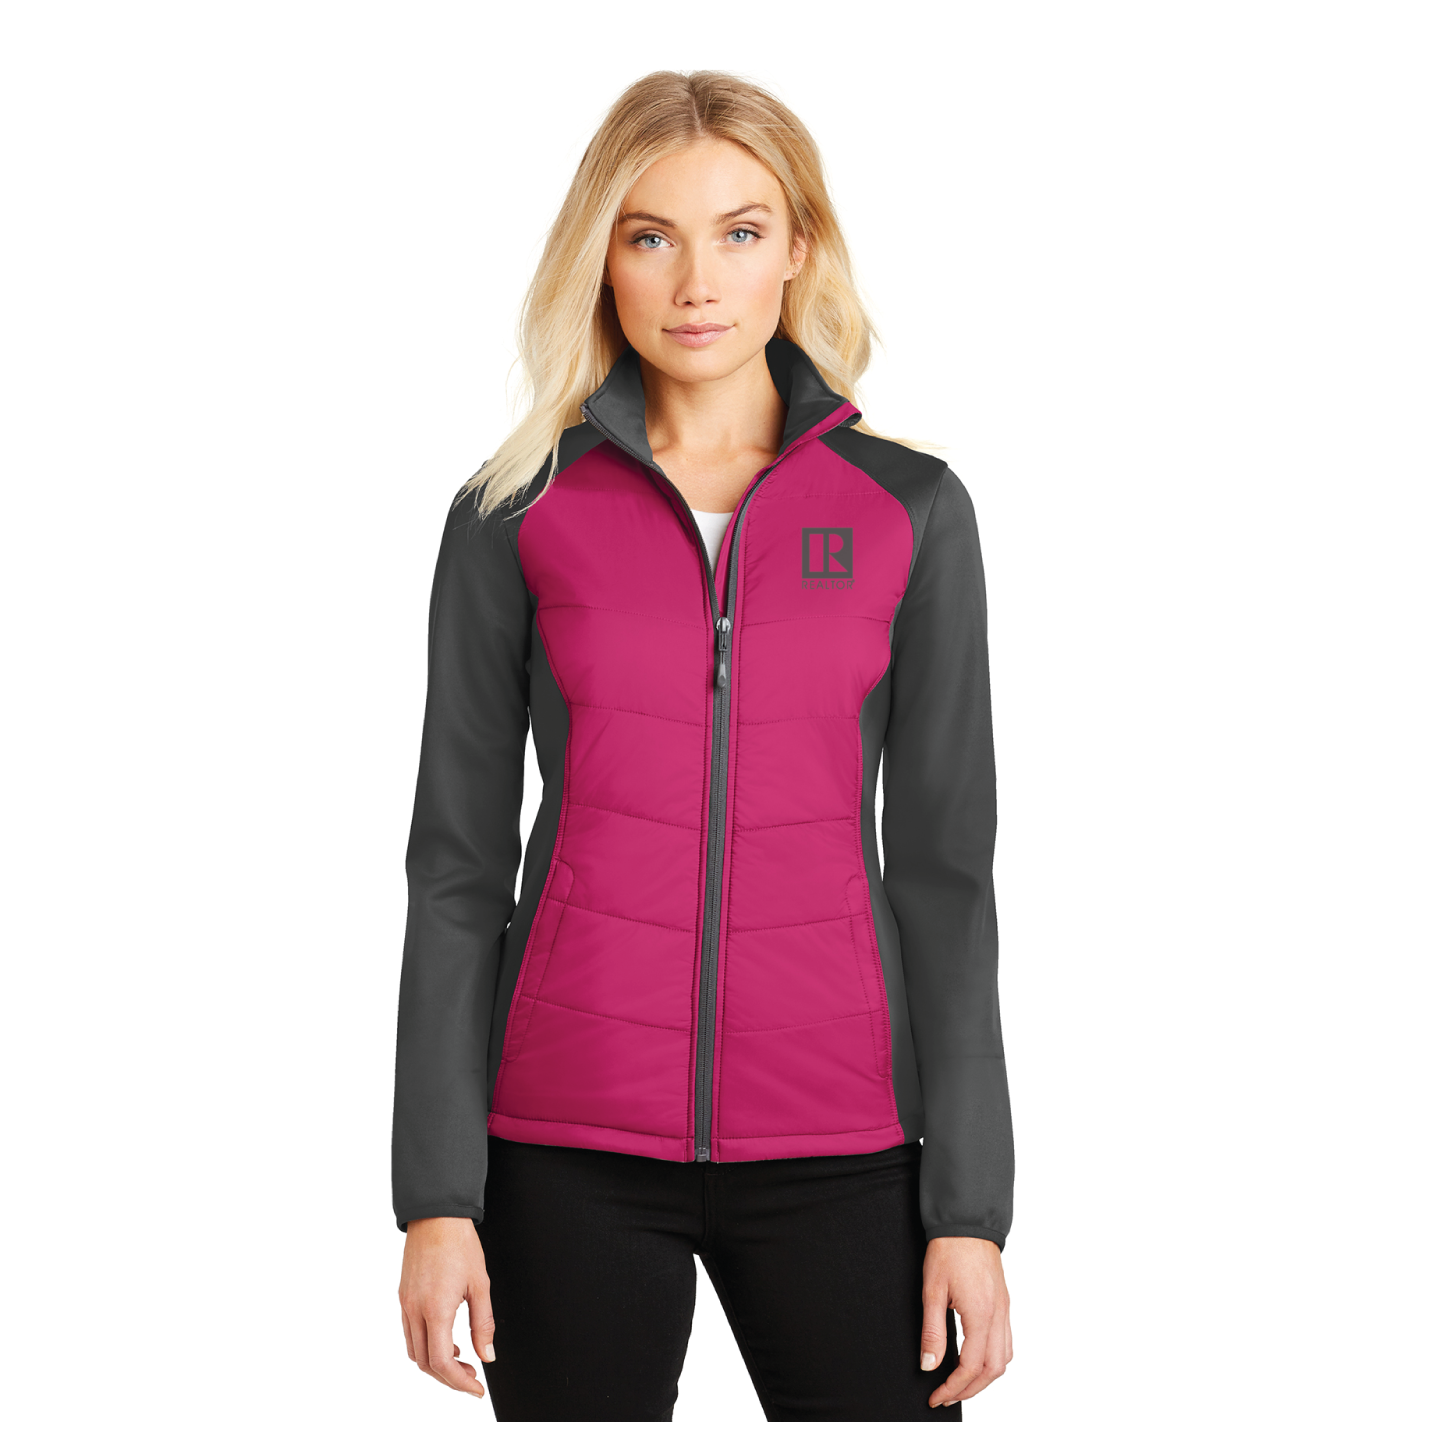 Ladie's Quilted Softshell Mashup Jacket North Face, Mashup, Puffy, Vest, Softshell, Soft shell, Jacket, Coat, Sping, Winter